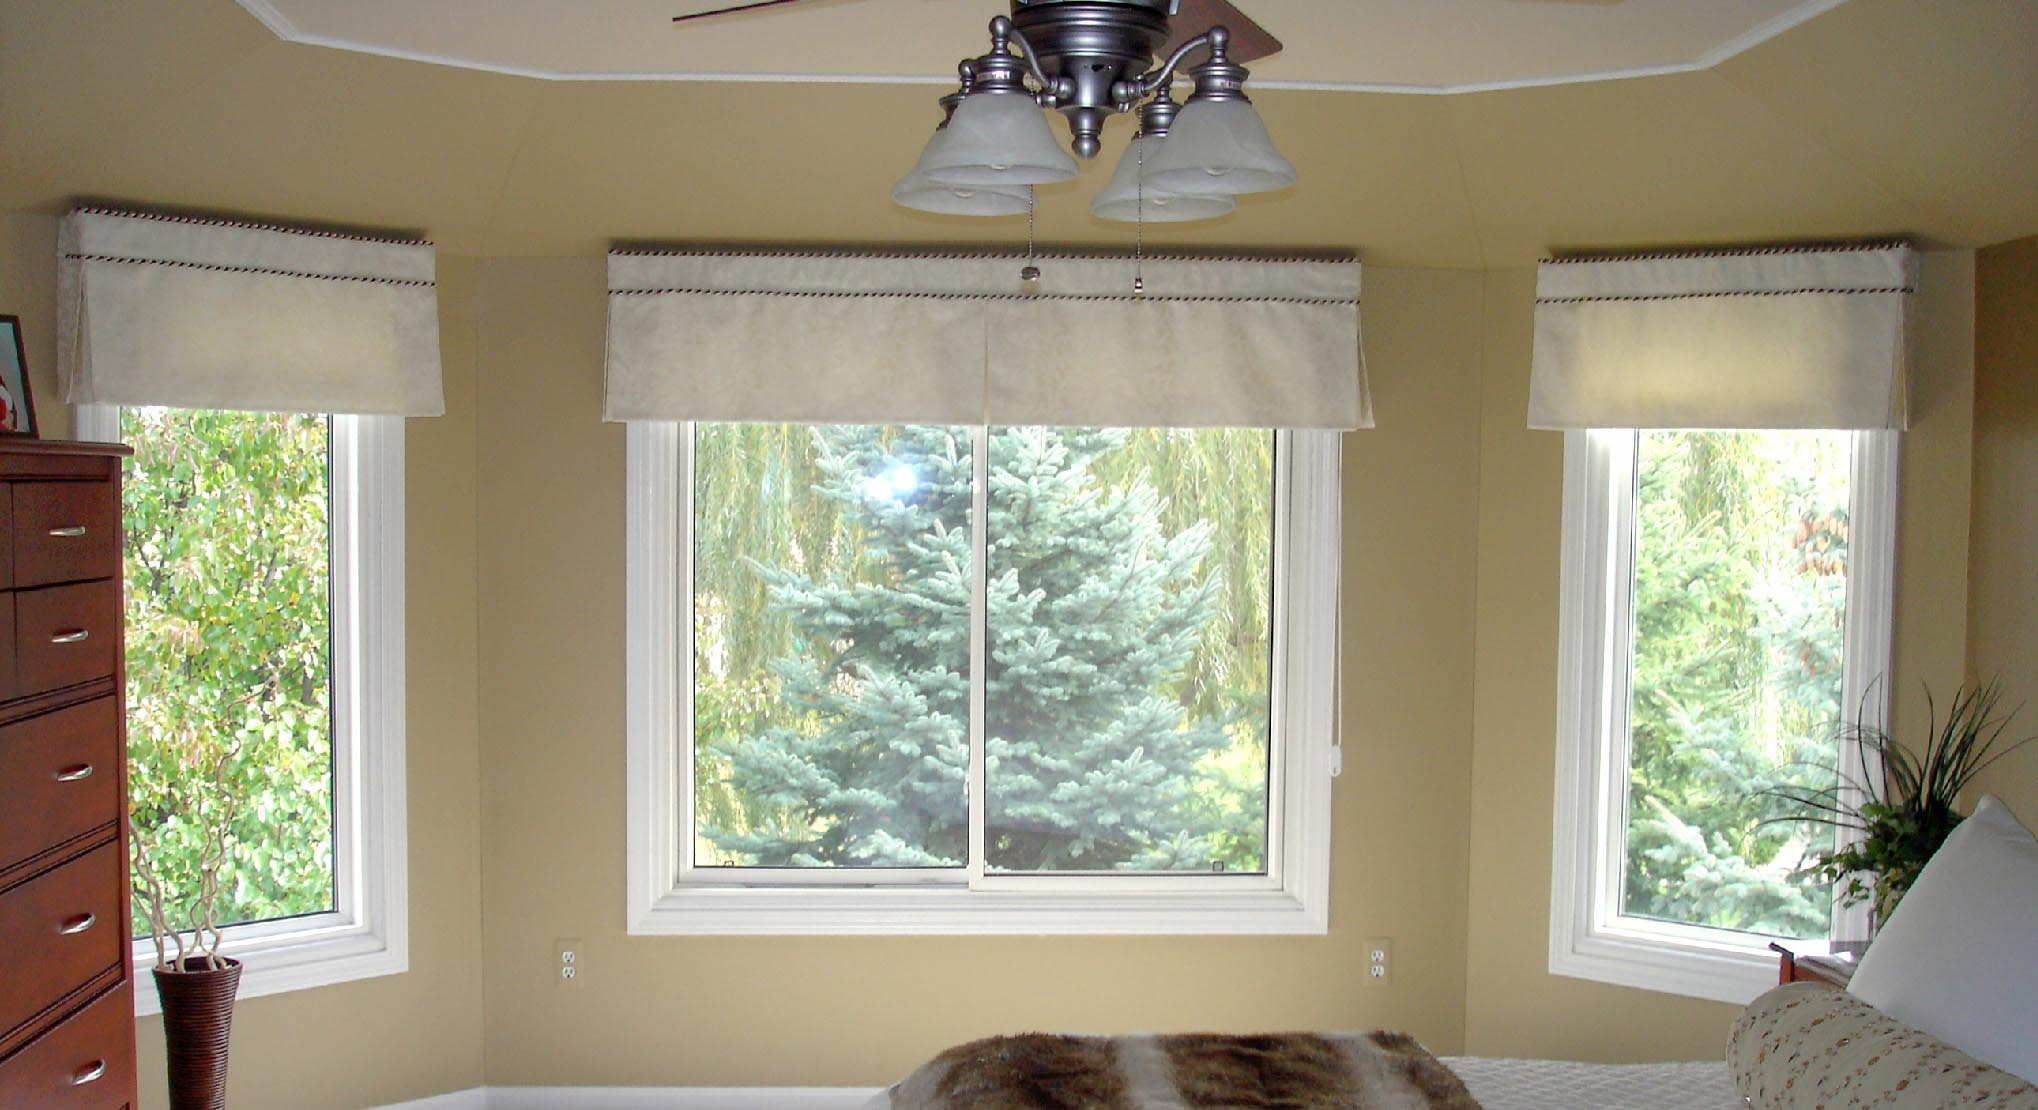 Bedroom valances for windows window treatments design ideas for 2016 window design